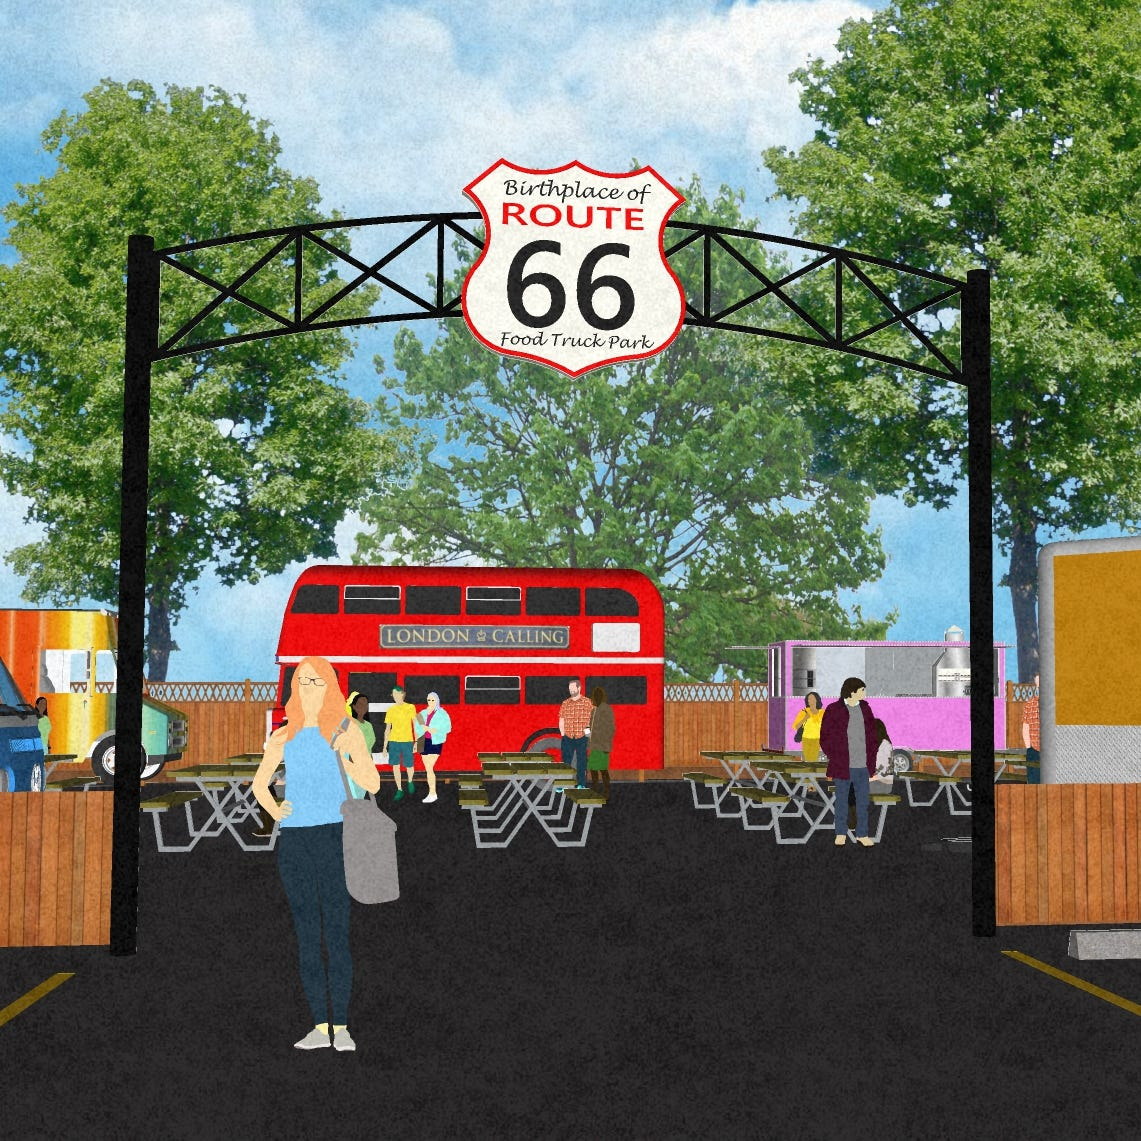 Food truck park, bar to pay tribute to Route 66